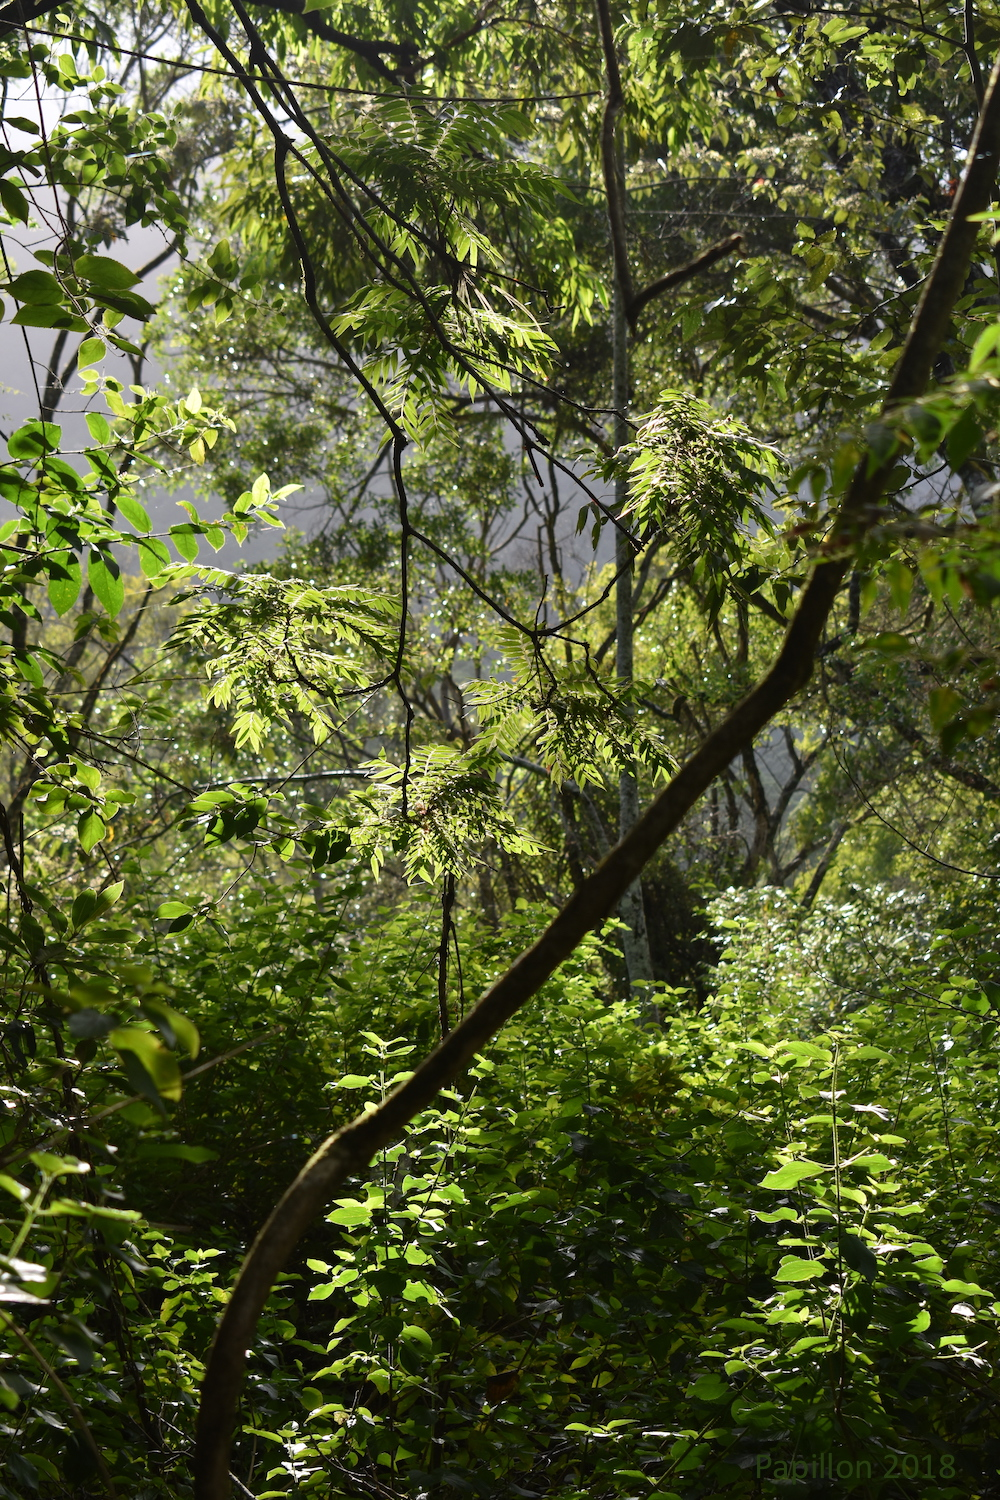 The first thing I see when I open my eyes in the morning is sunlight filtering through dense green foliage.